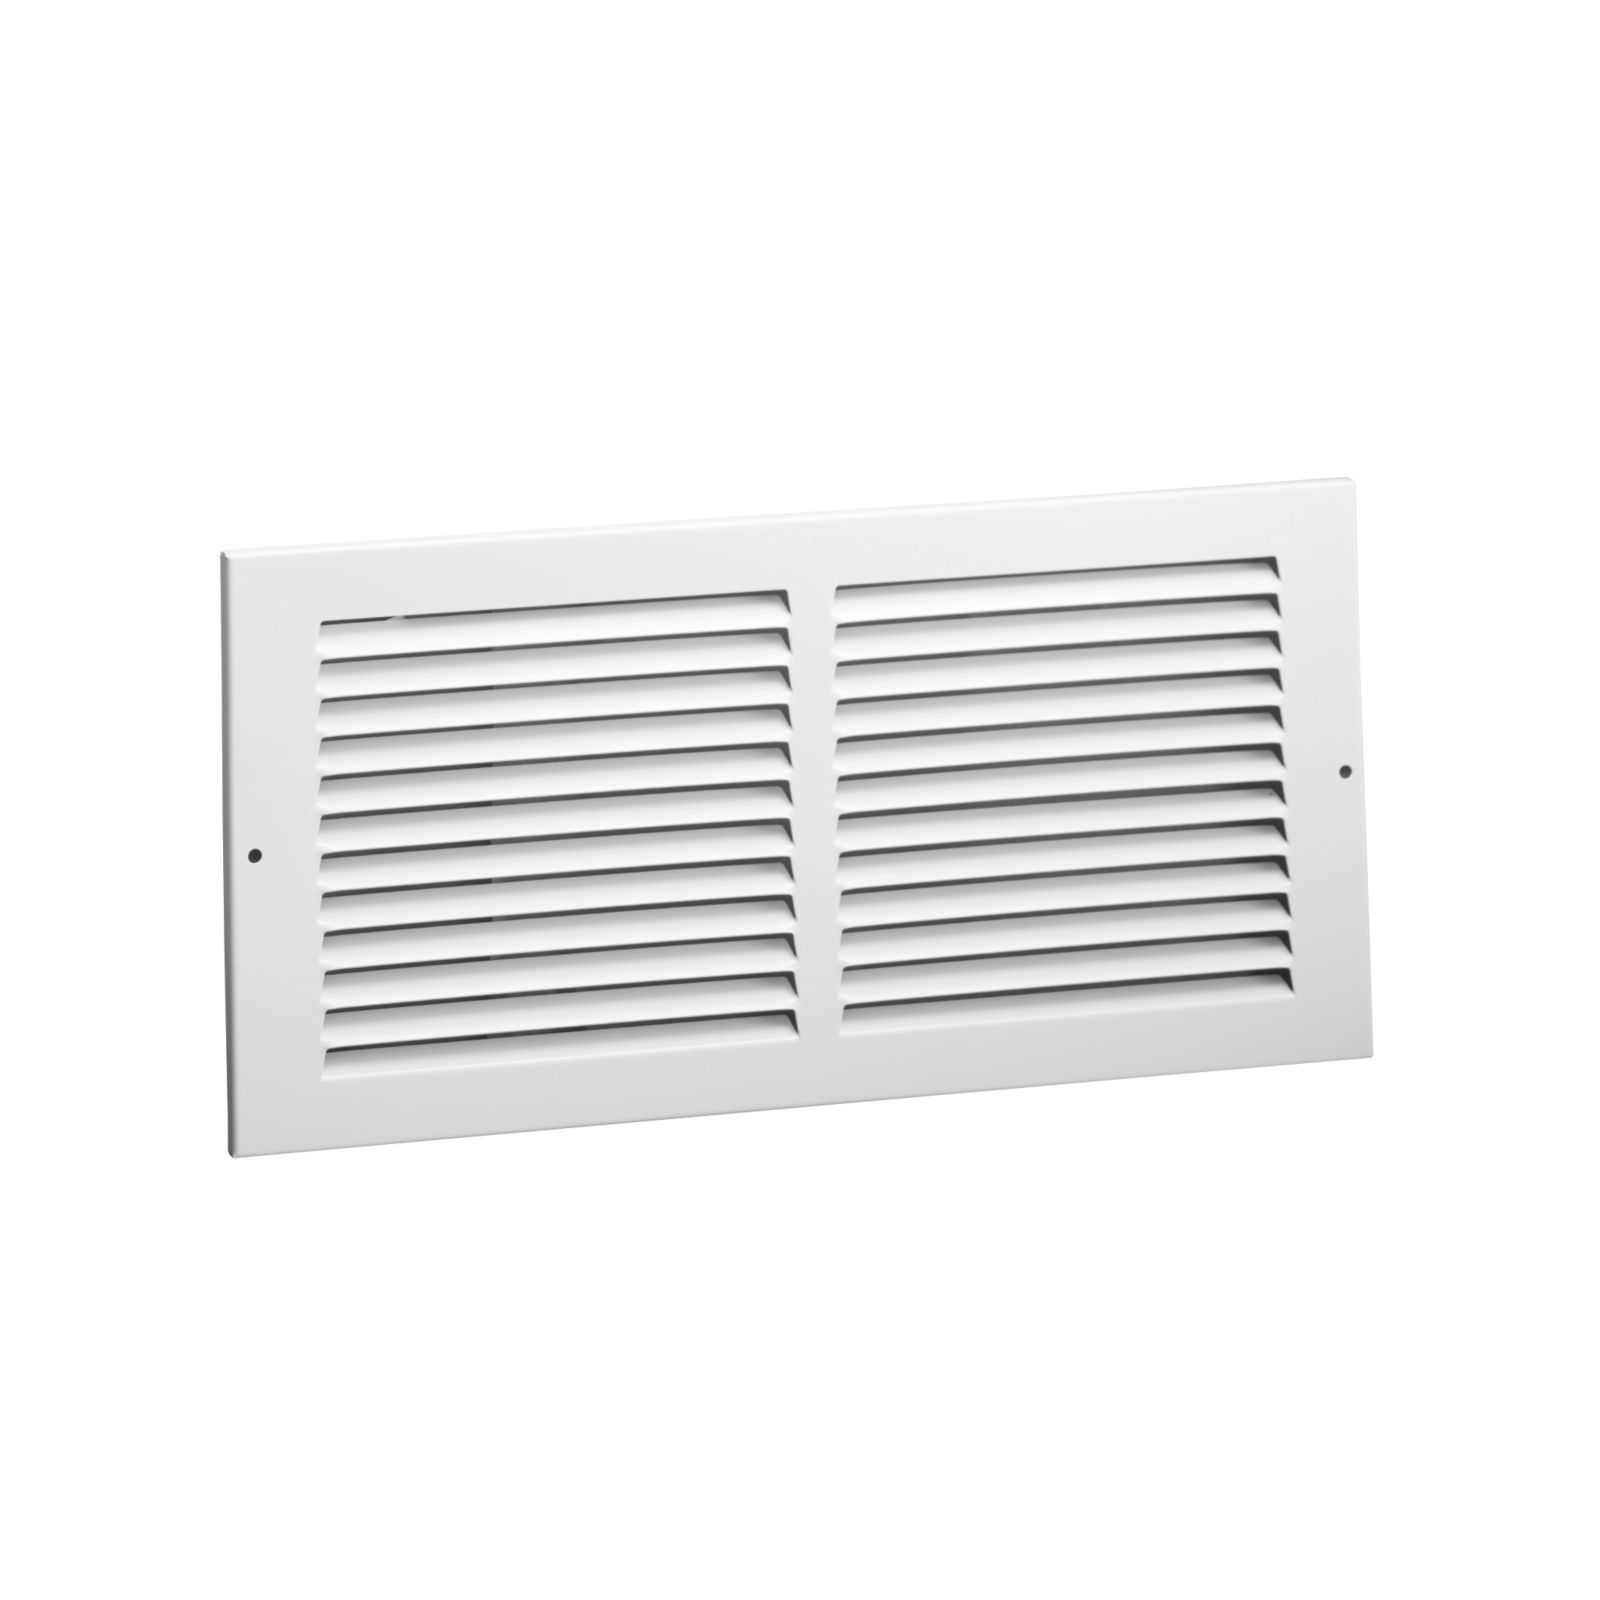 "Hart & Cooley 703979 - #672M Steel Return Air Grille, White Finish, 12"" X 6"""